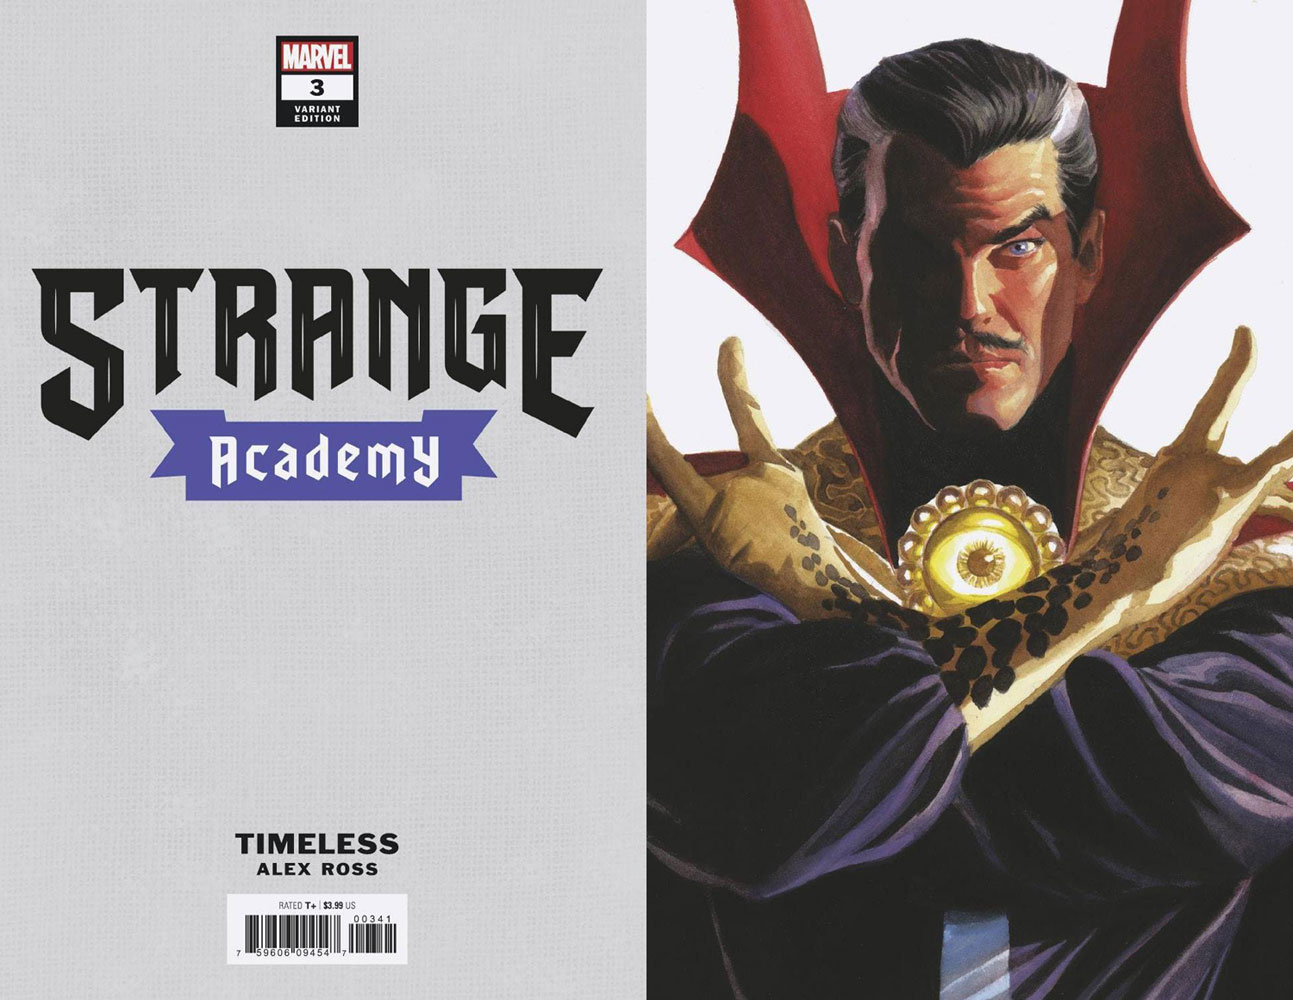 Strange Academy #3 (variant Alex Ross Timeless cover - Doctor Strange)  [2020] - Marvel Comics